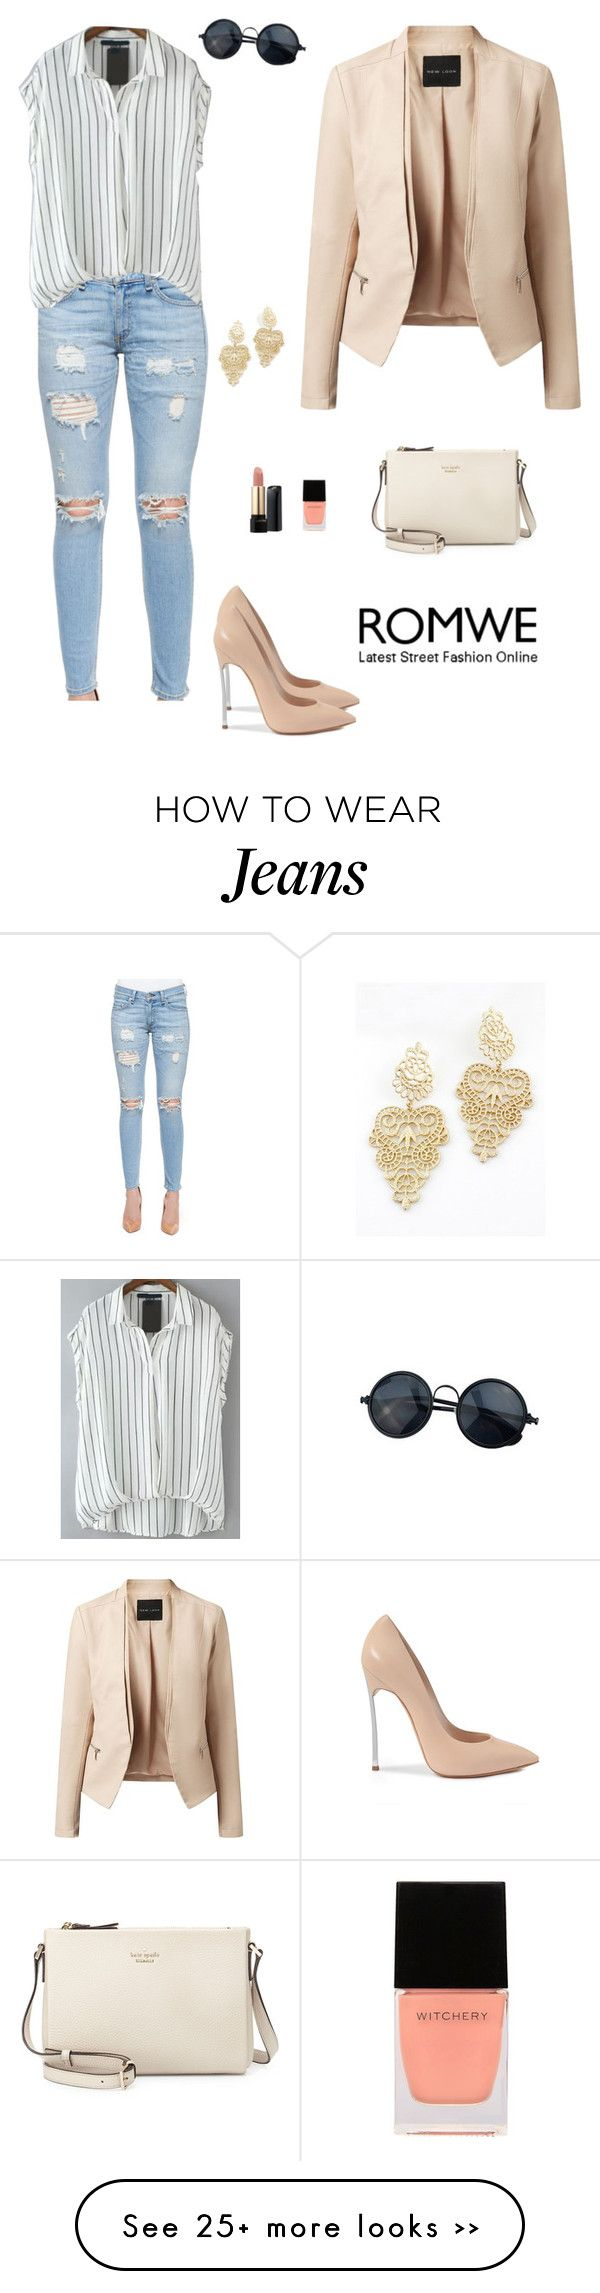 """""""Romwe 4"""" by amra-f on Polyvore"""